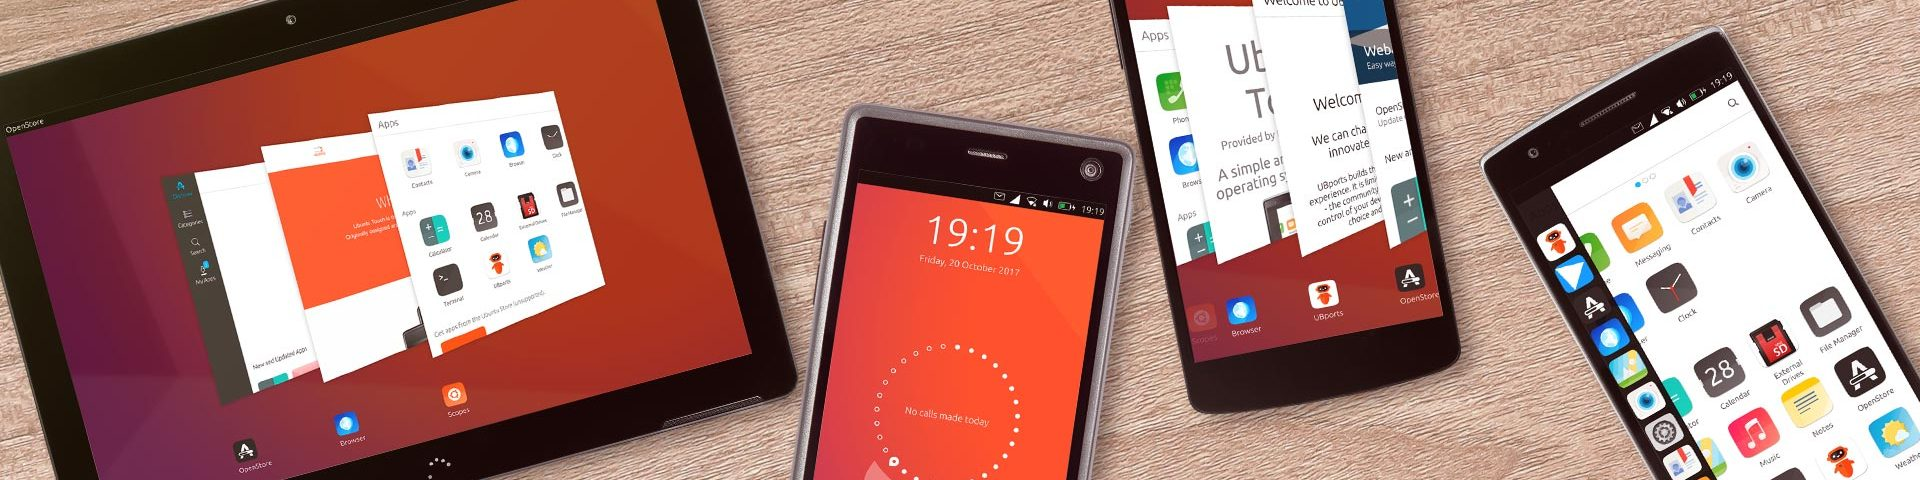 The truth is that Ubuntu touch (and arguably luneOS) is the already daily driver ready fully open source gnu/Linux OS